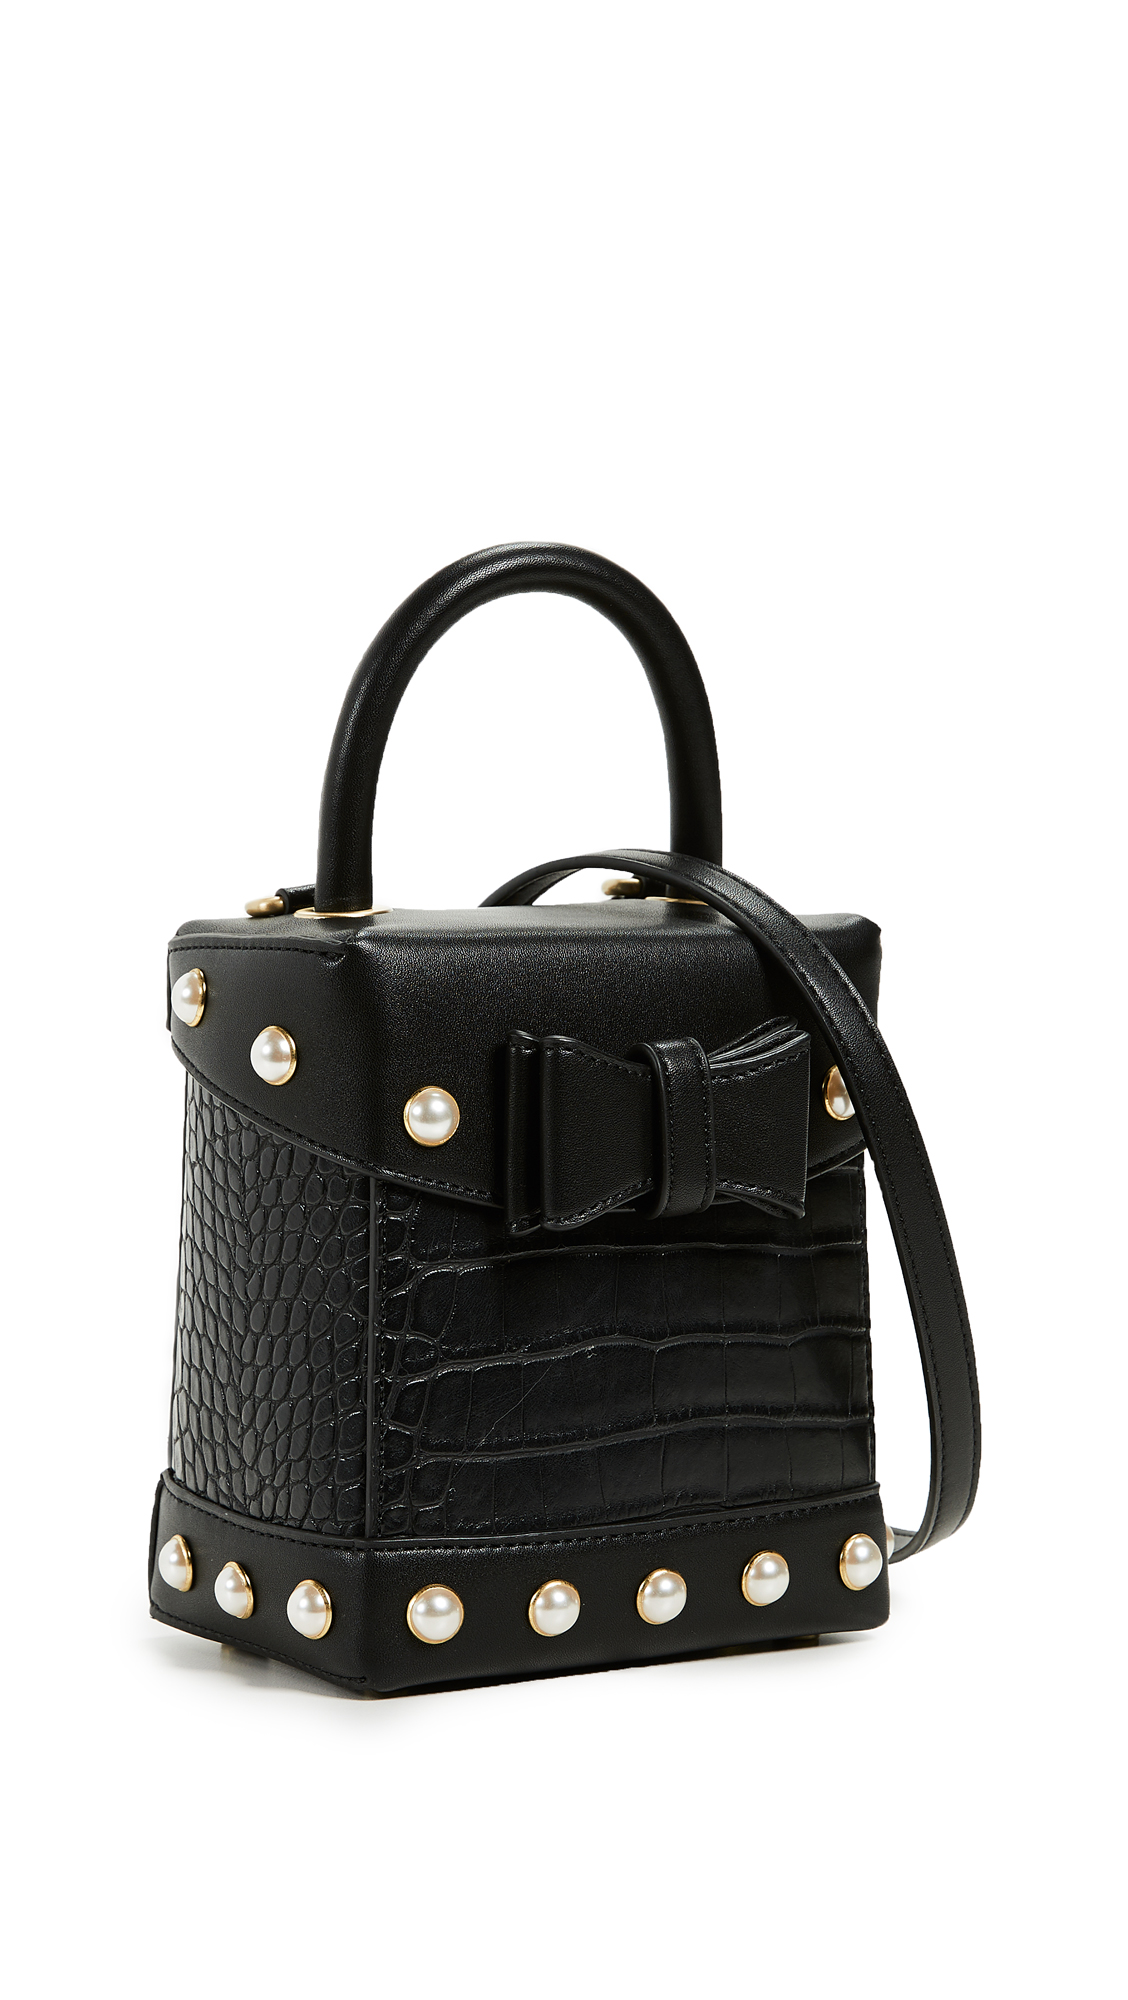 Sam Edelman Charlie Croc Box Bag In Black